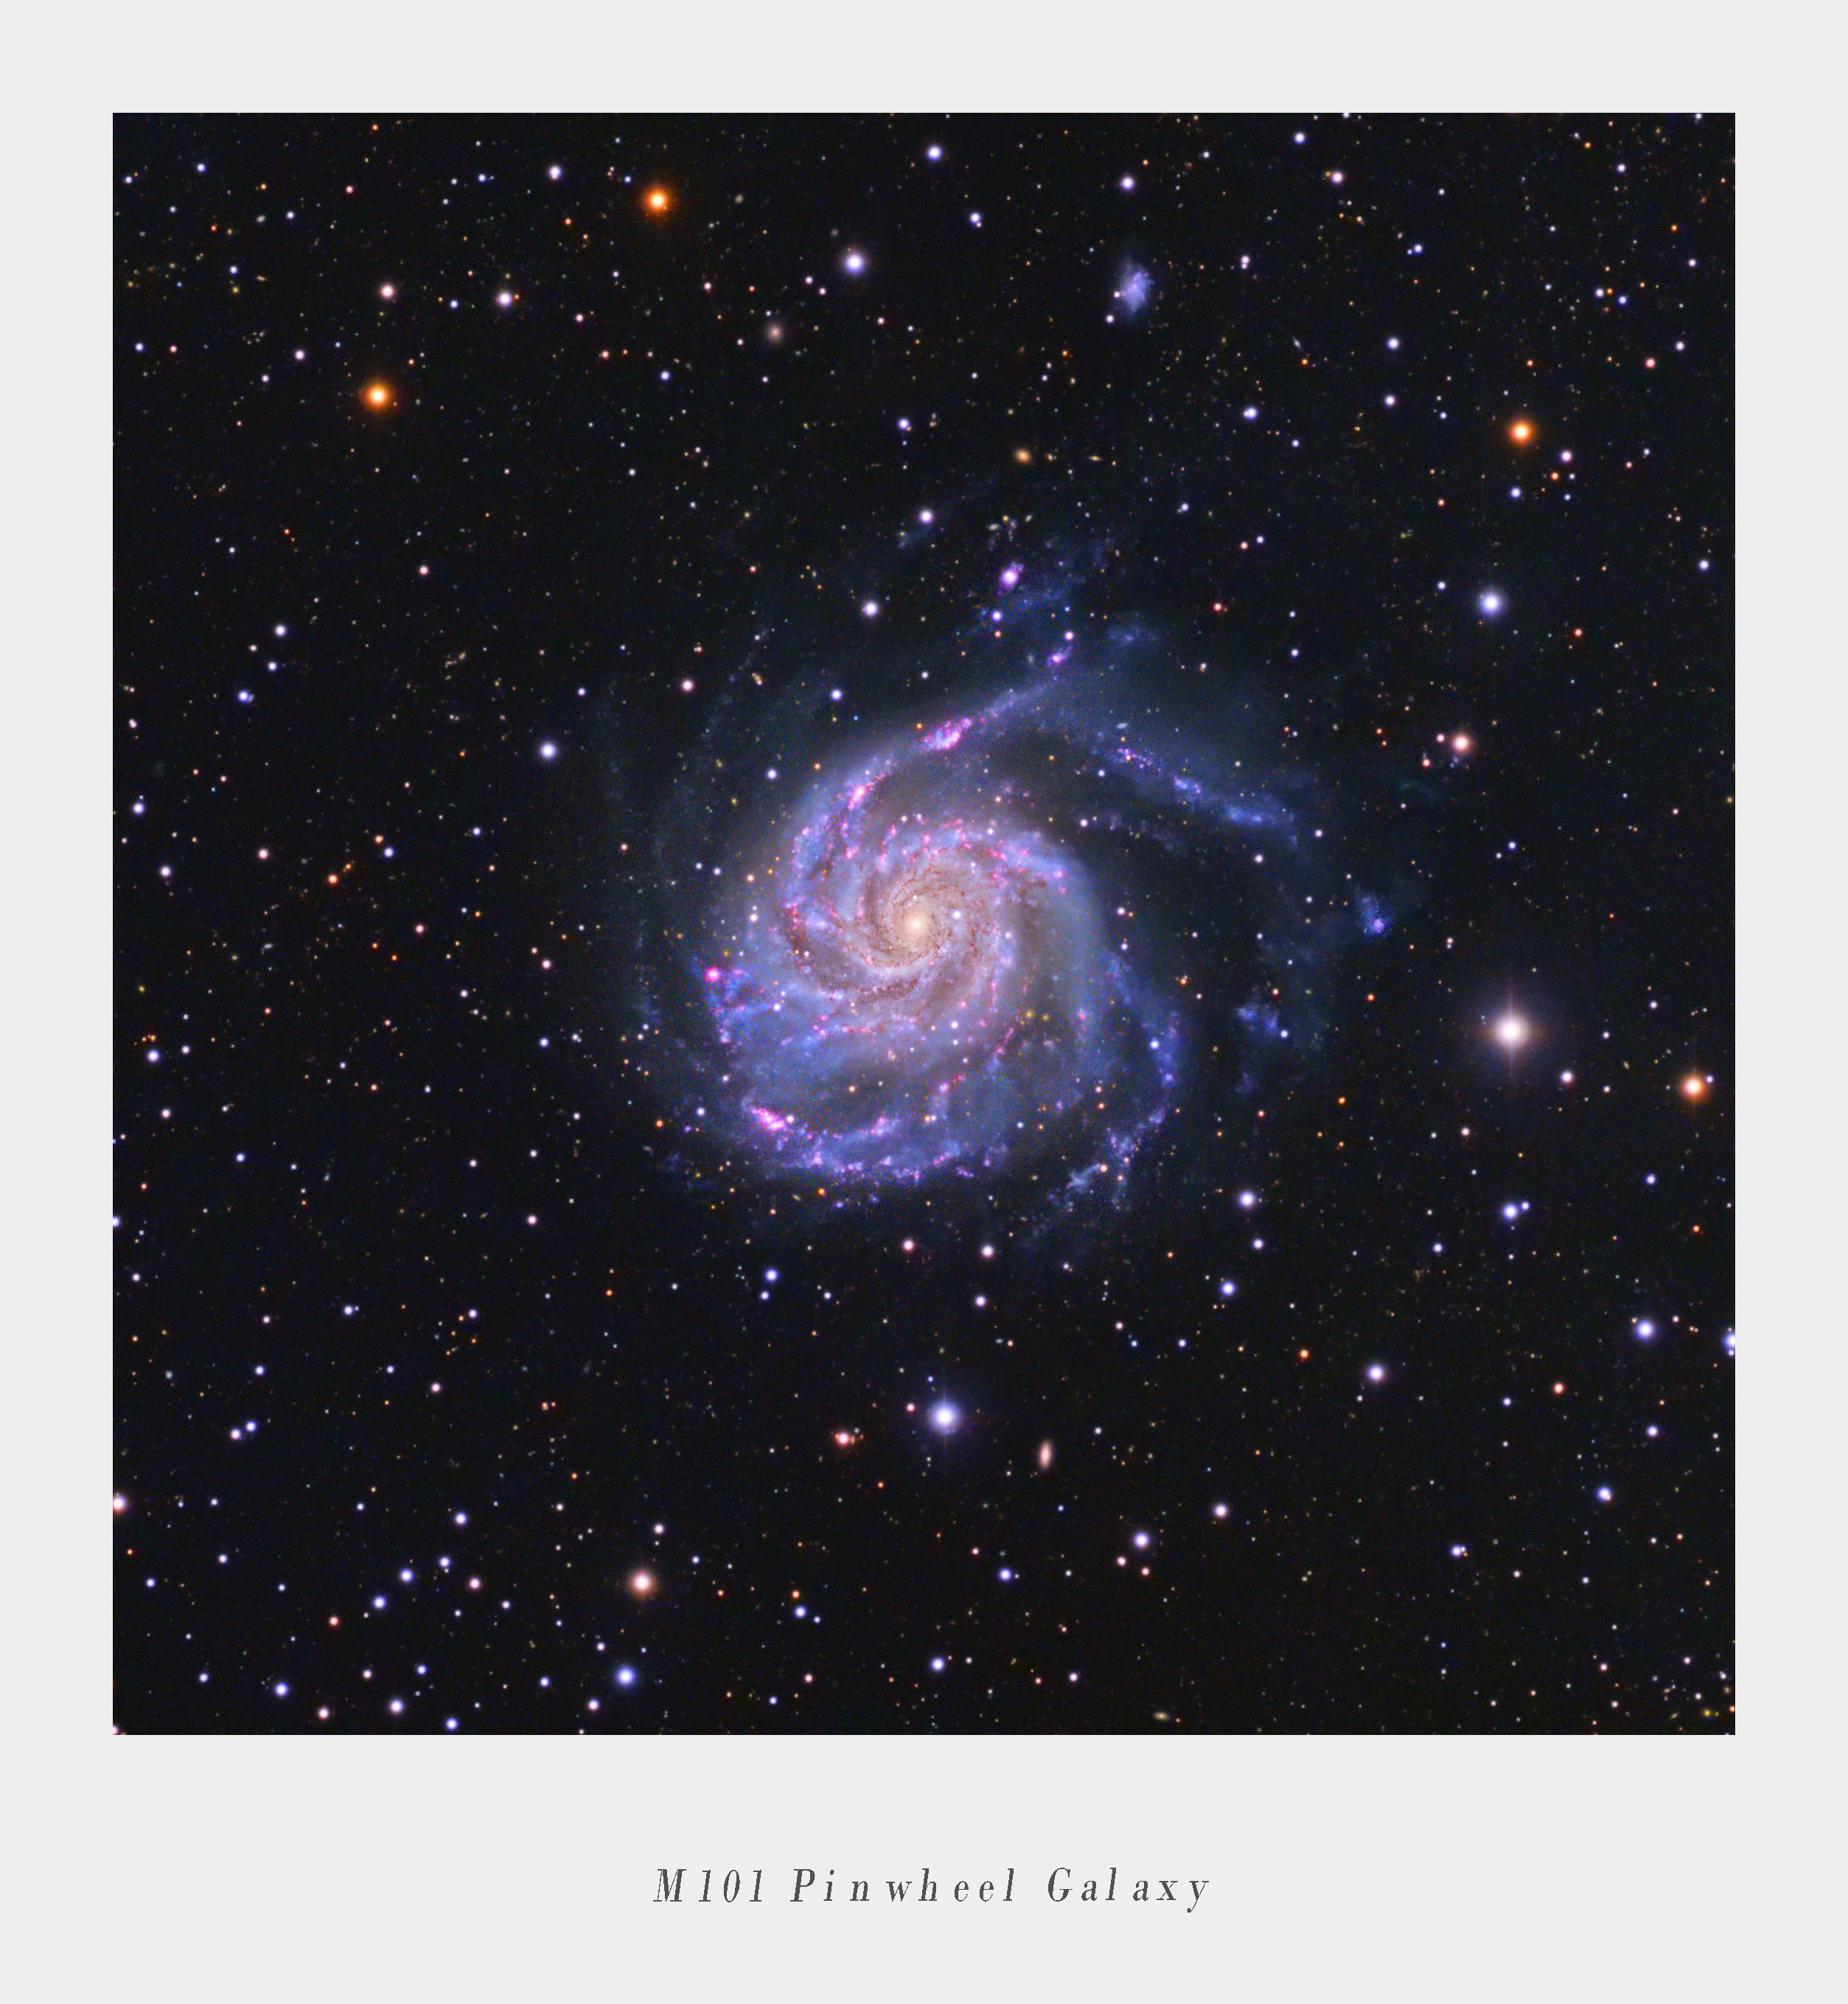 M101_FInal_Work_Crop_Text.jpg